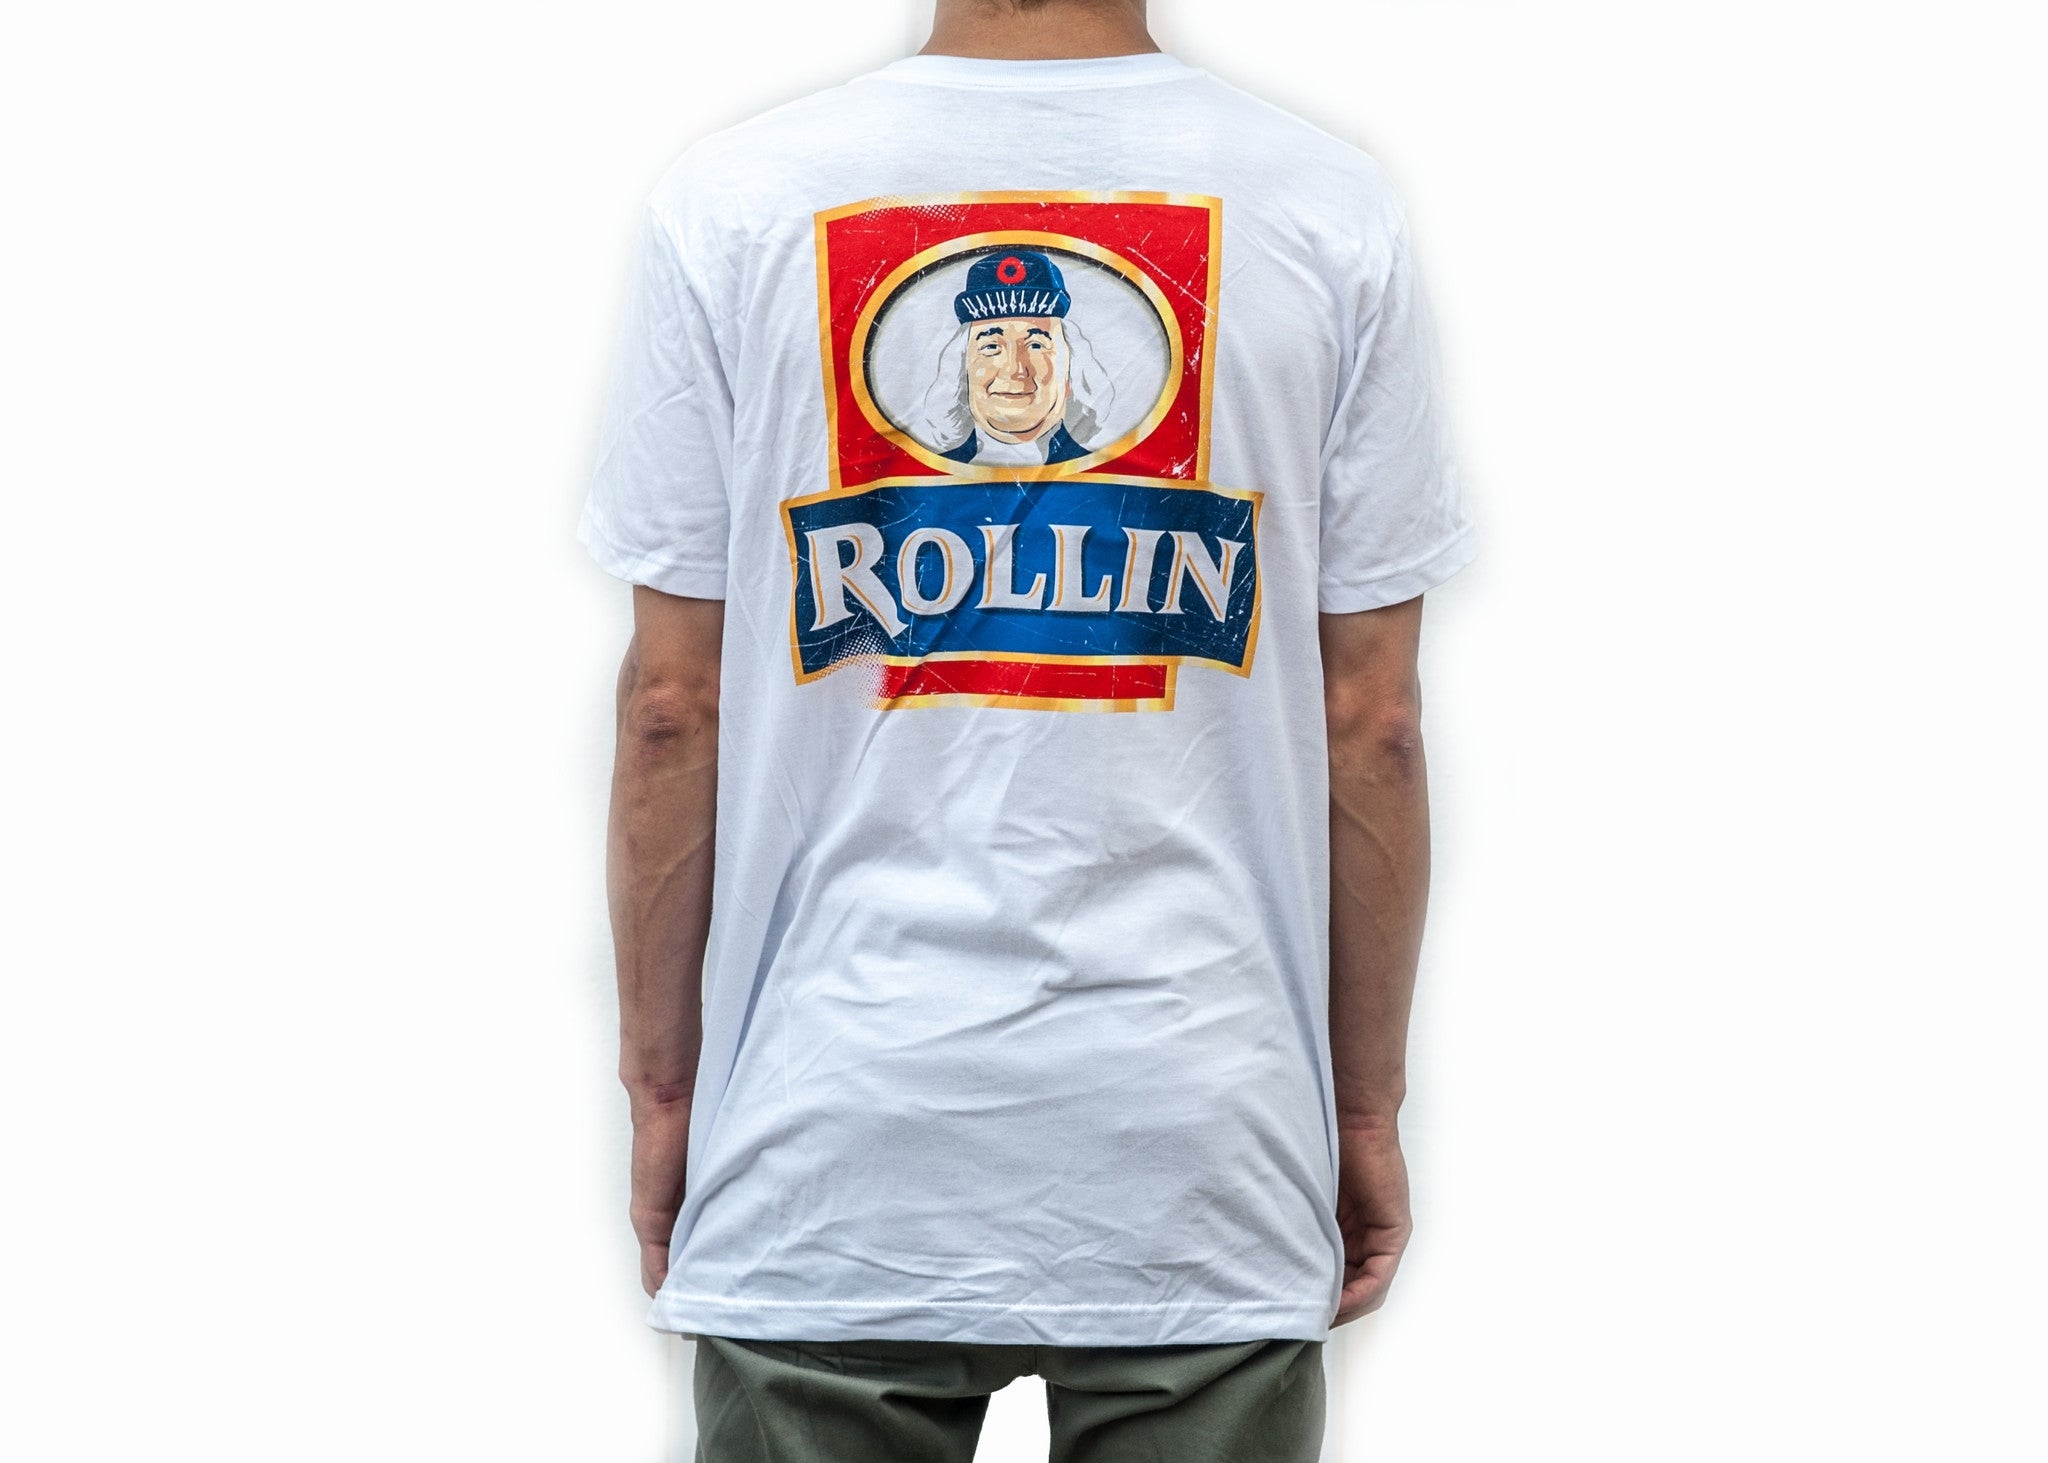 Rollin Quaker white t-shirt